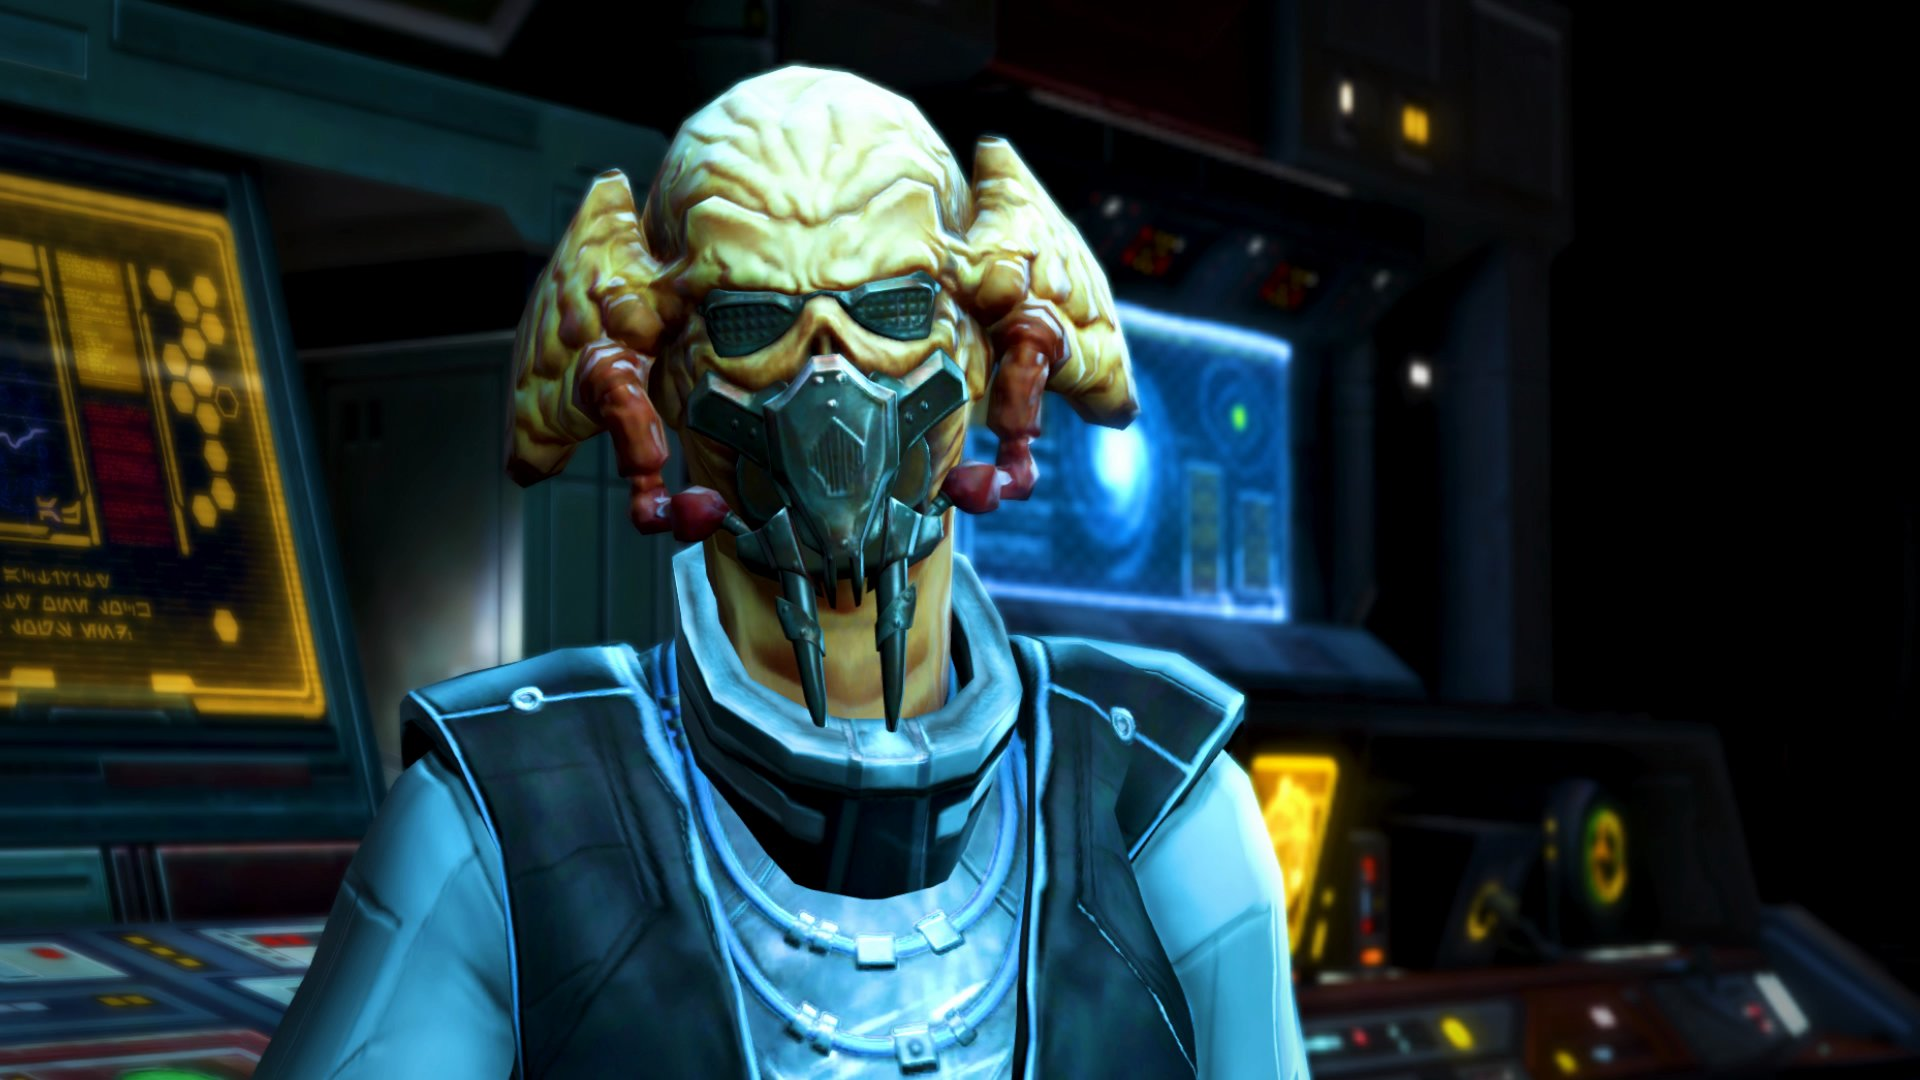 The Old Republic On Twitter Only The Weak Choose Fear As Their Weapon Jedi Master Gnost Dural Jediundersiege Swtor